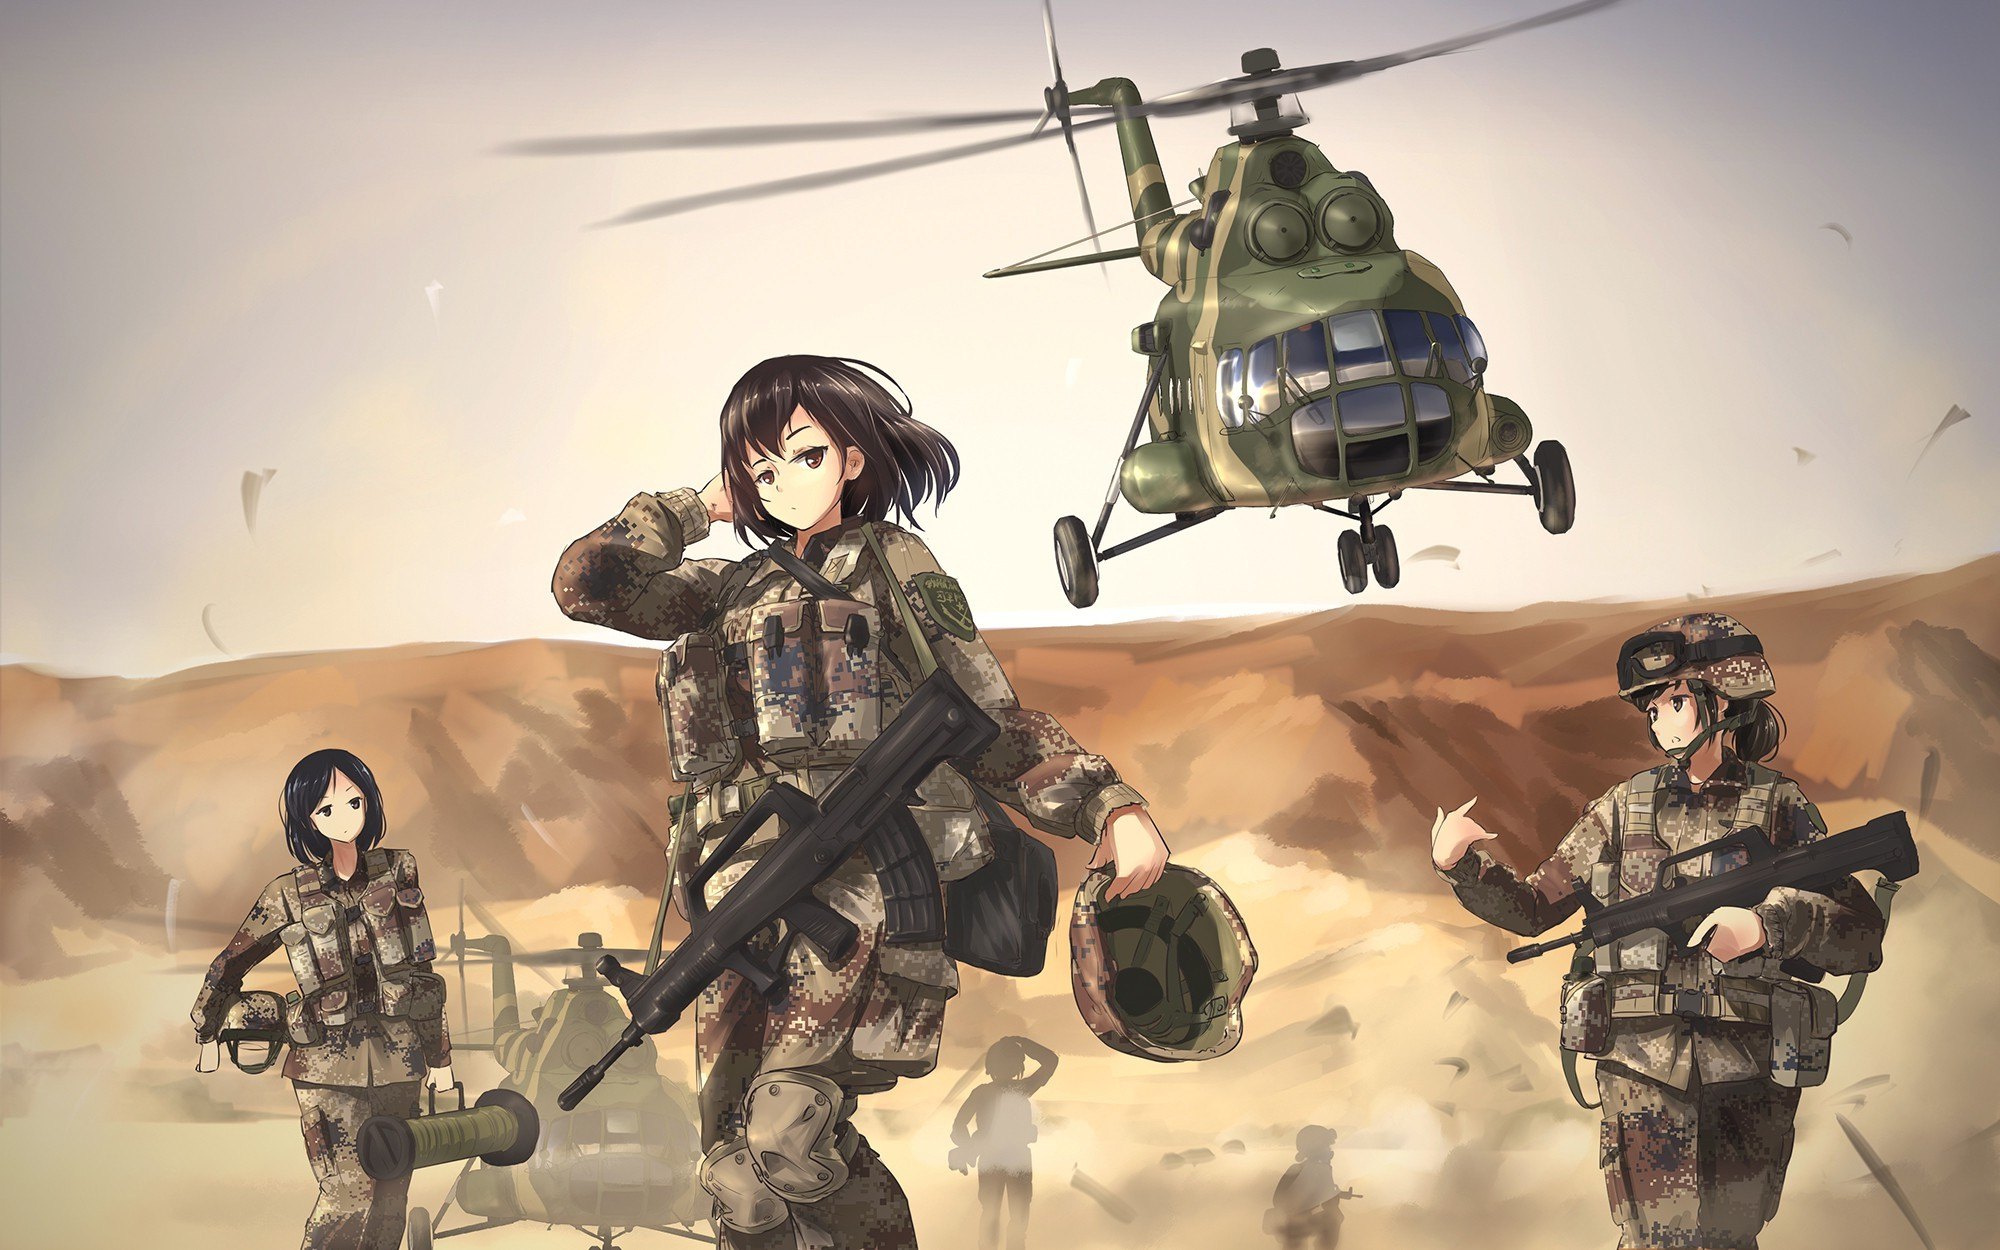 Cute Anime Couple Wallpaper Hd For Android Wallpaper Women Anime Girls Weapon Aircraft Soldier